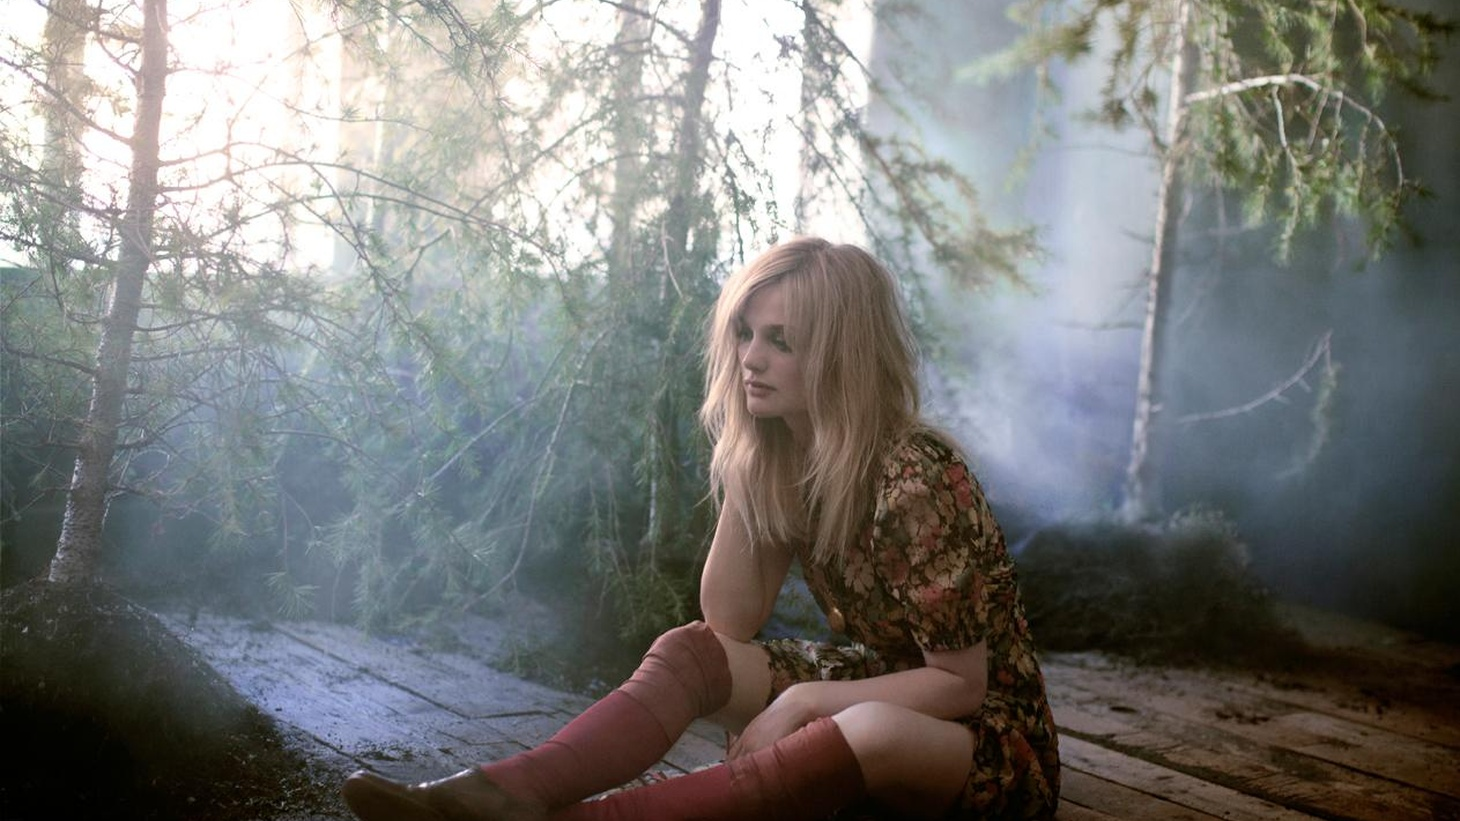 LA-based singer Alison Sudol, better known as A Fine Frenzy, spins a fable around a pine tree on her third release.